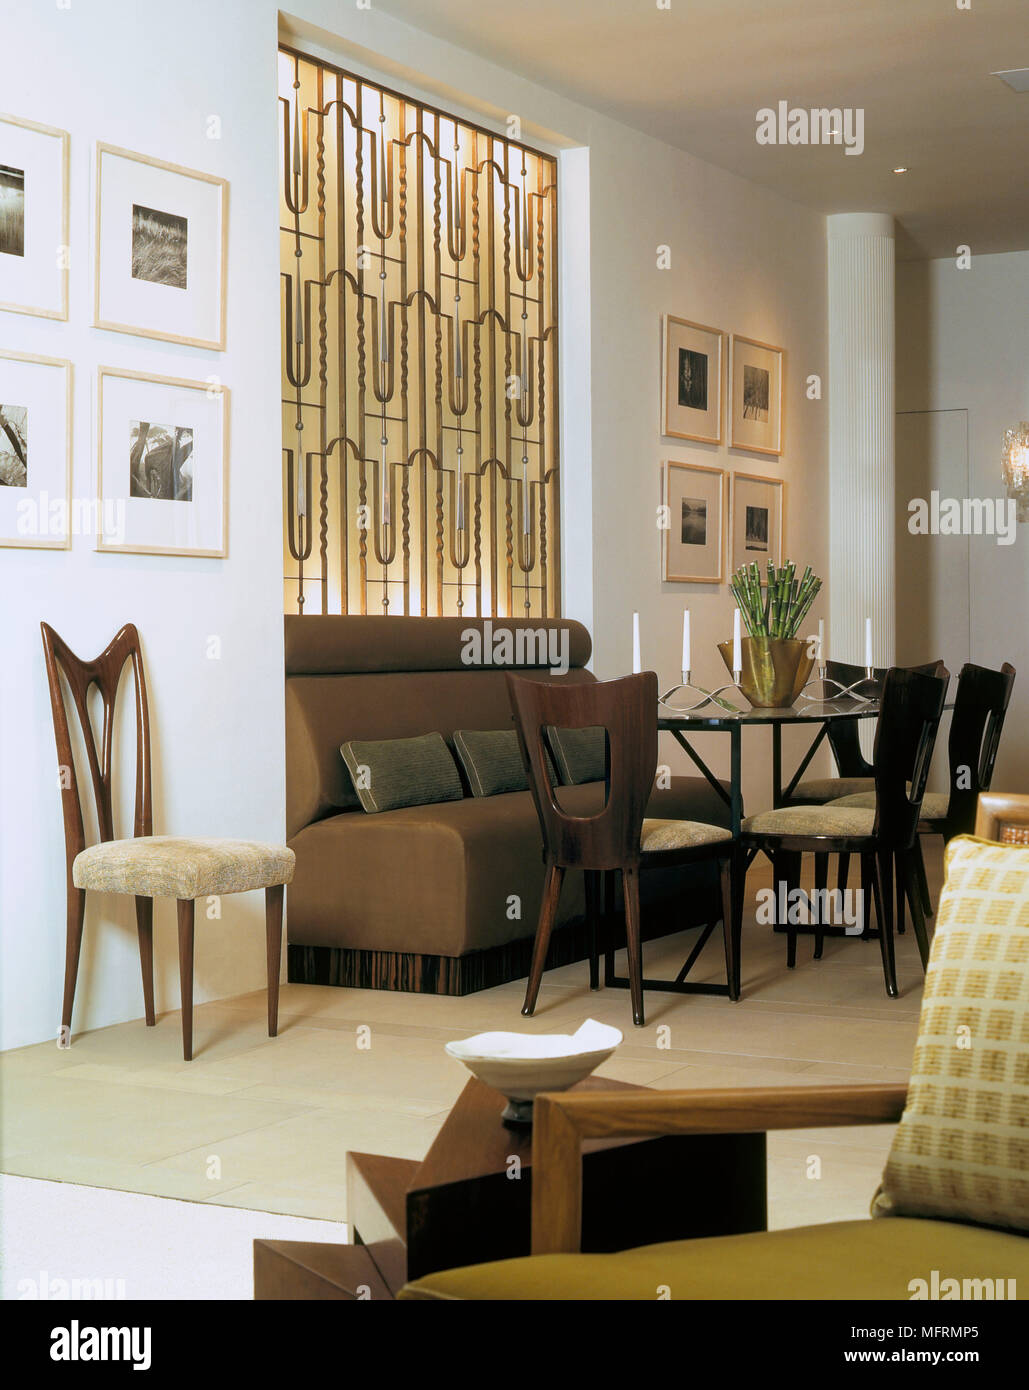 A Modern Open Plan Dining Room With Glass Table Chairs Banquette